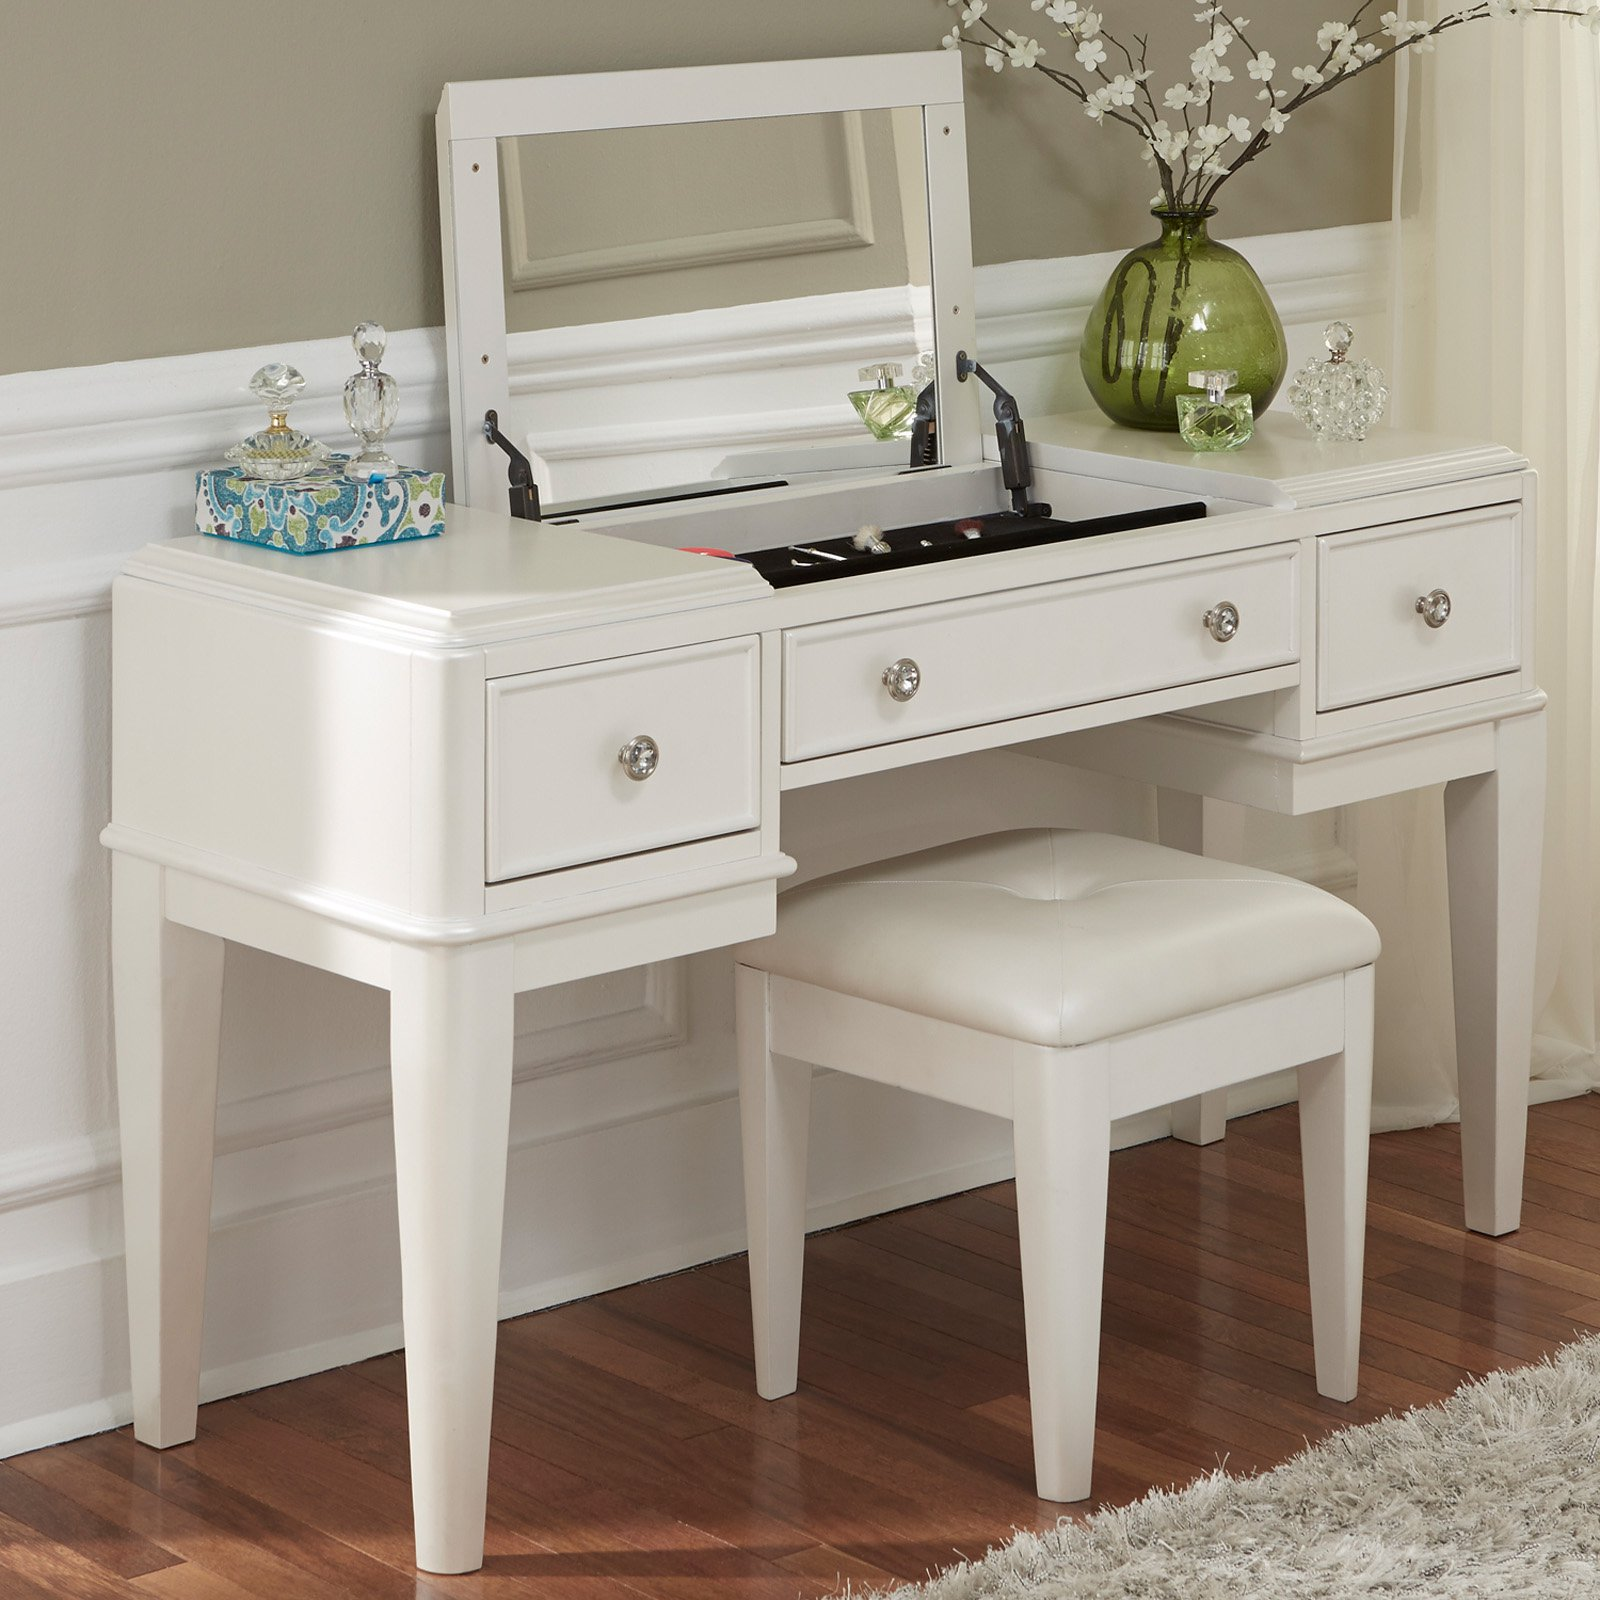 Liberty Furniture Stardust Bedroom Vanity with Optional Stool - Traveller Location